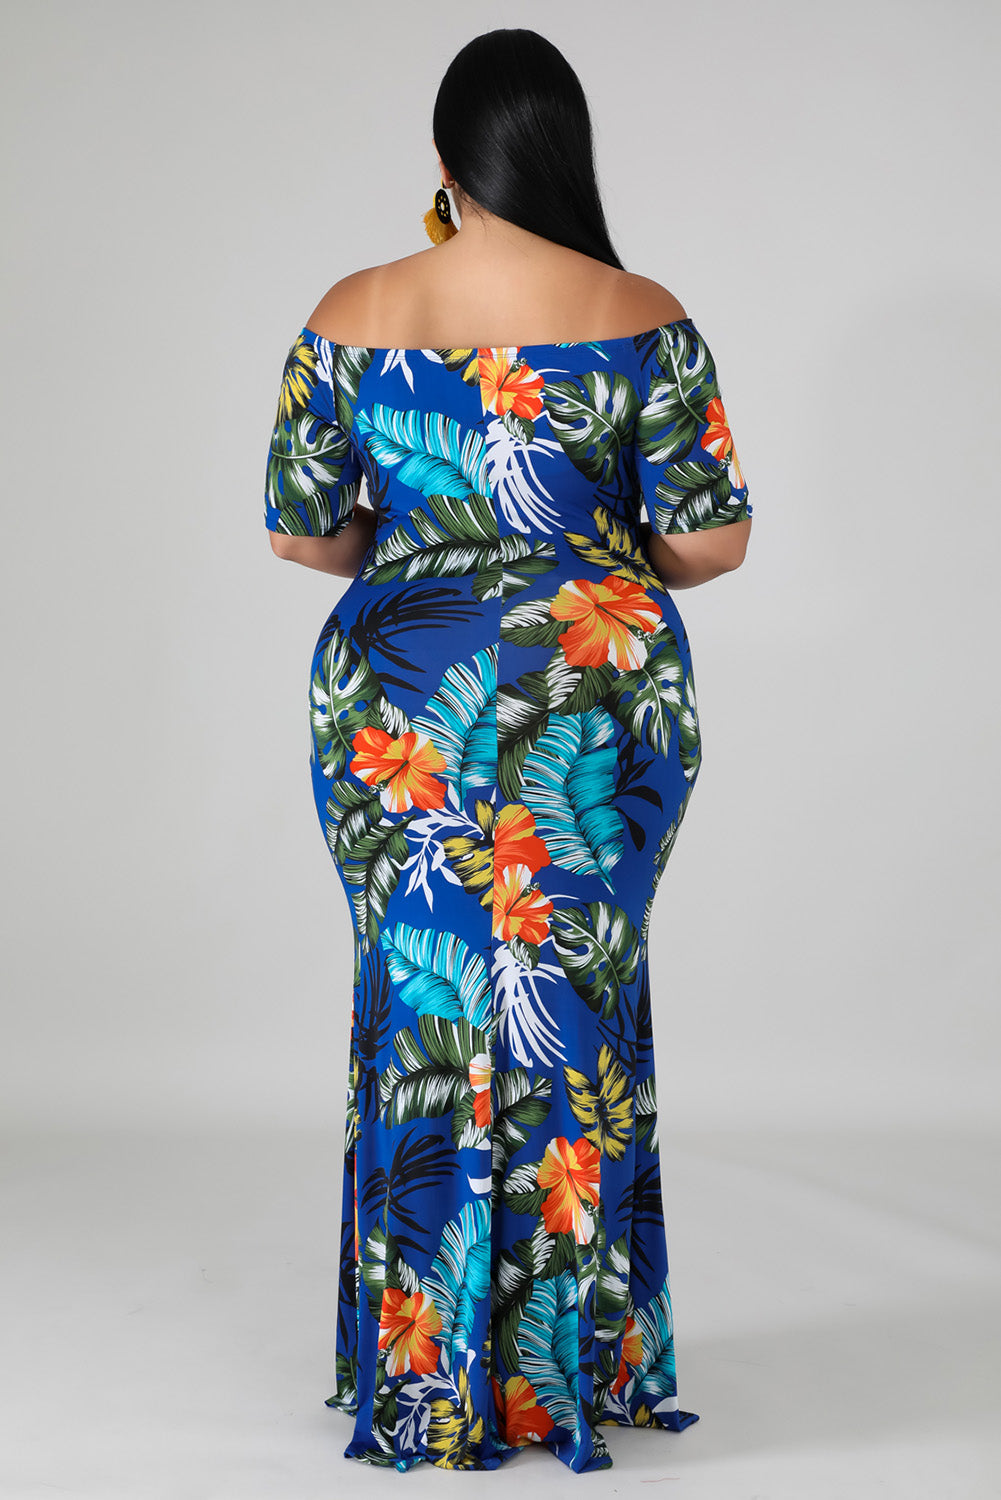 Green Off-the-shoulder Floral Print Plus Size Maxi Dress